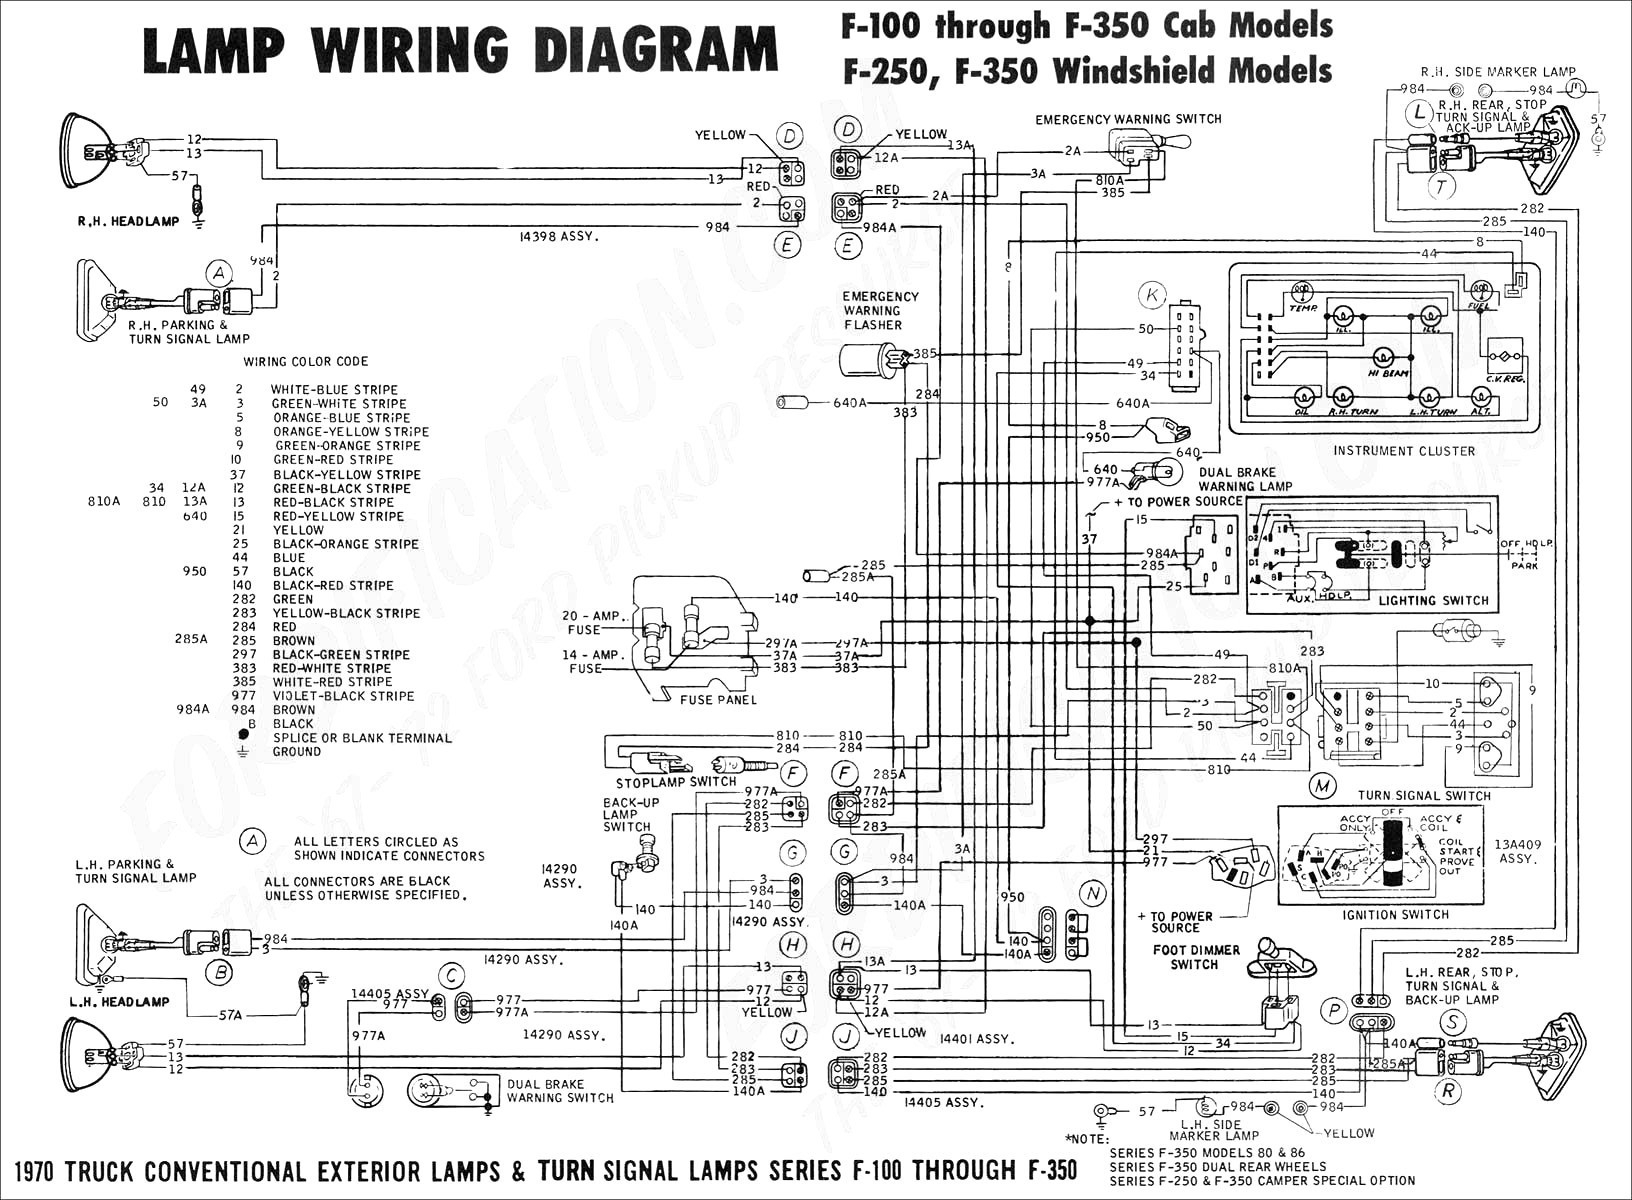 7 Pin Trailer Connector Wiring Diagram For F350 - Catalogue ...  Pin Trailer Wiring Diagram F on